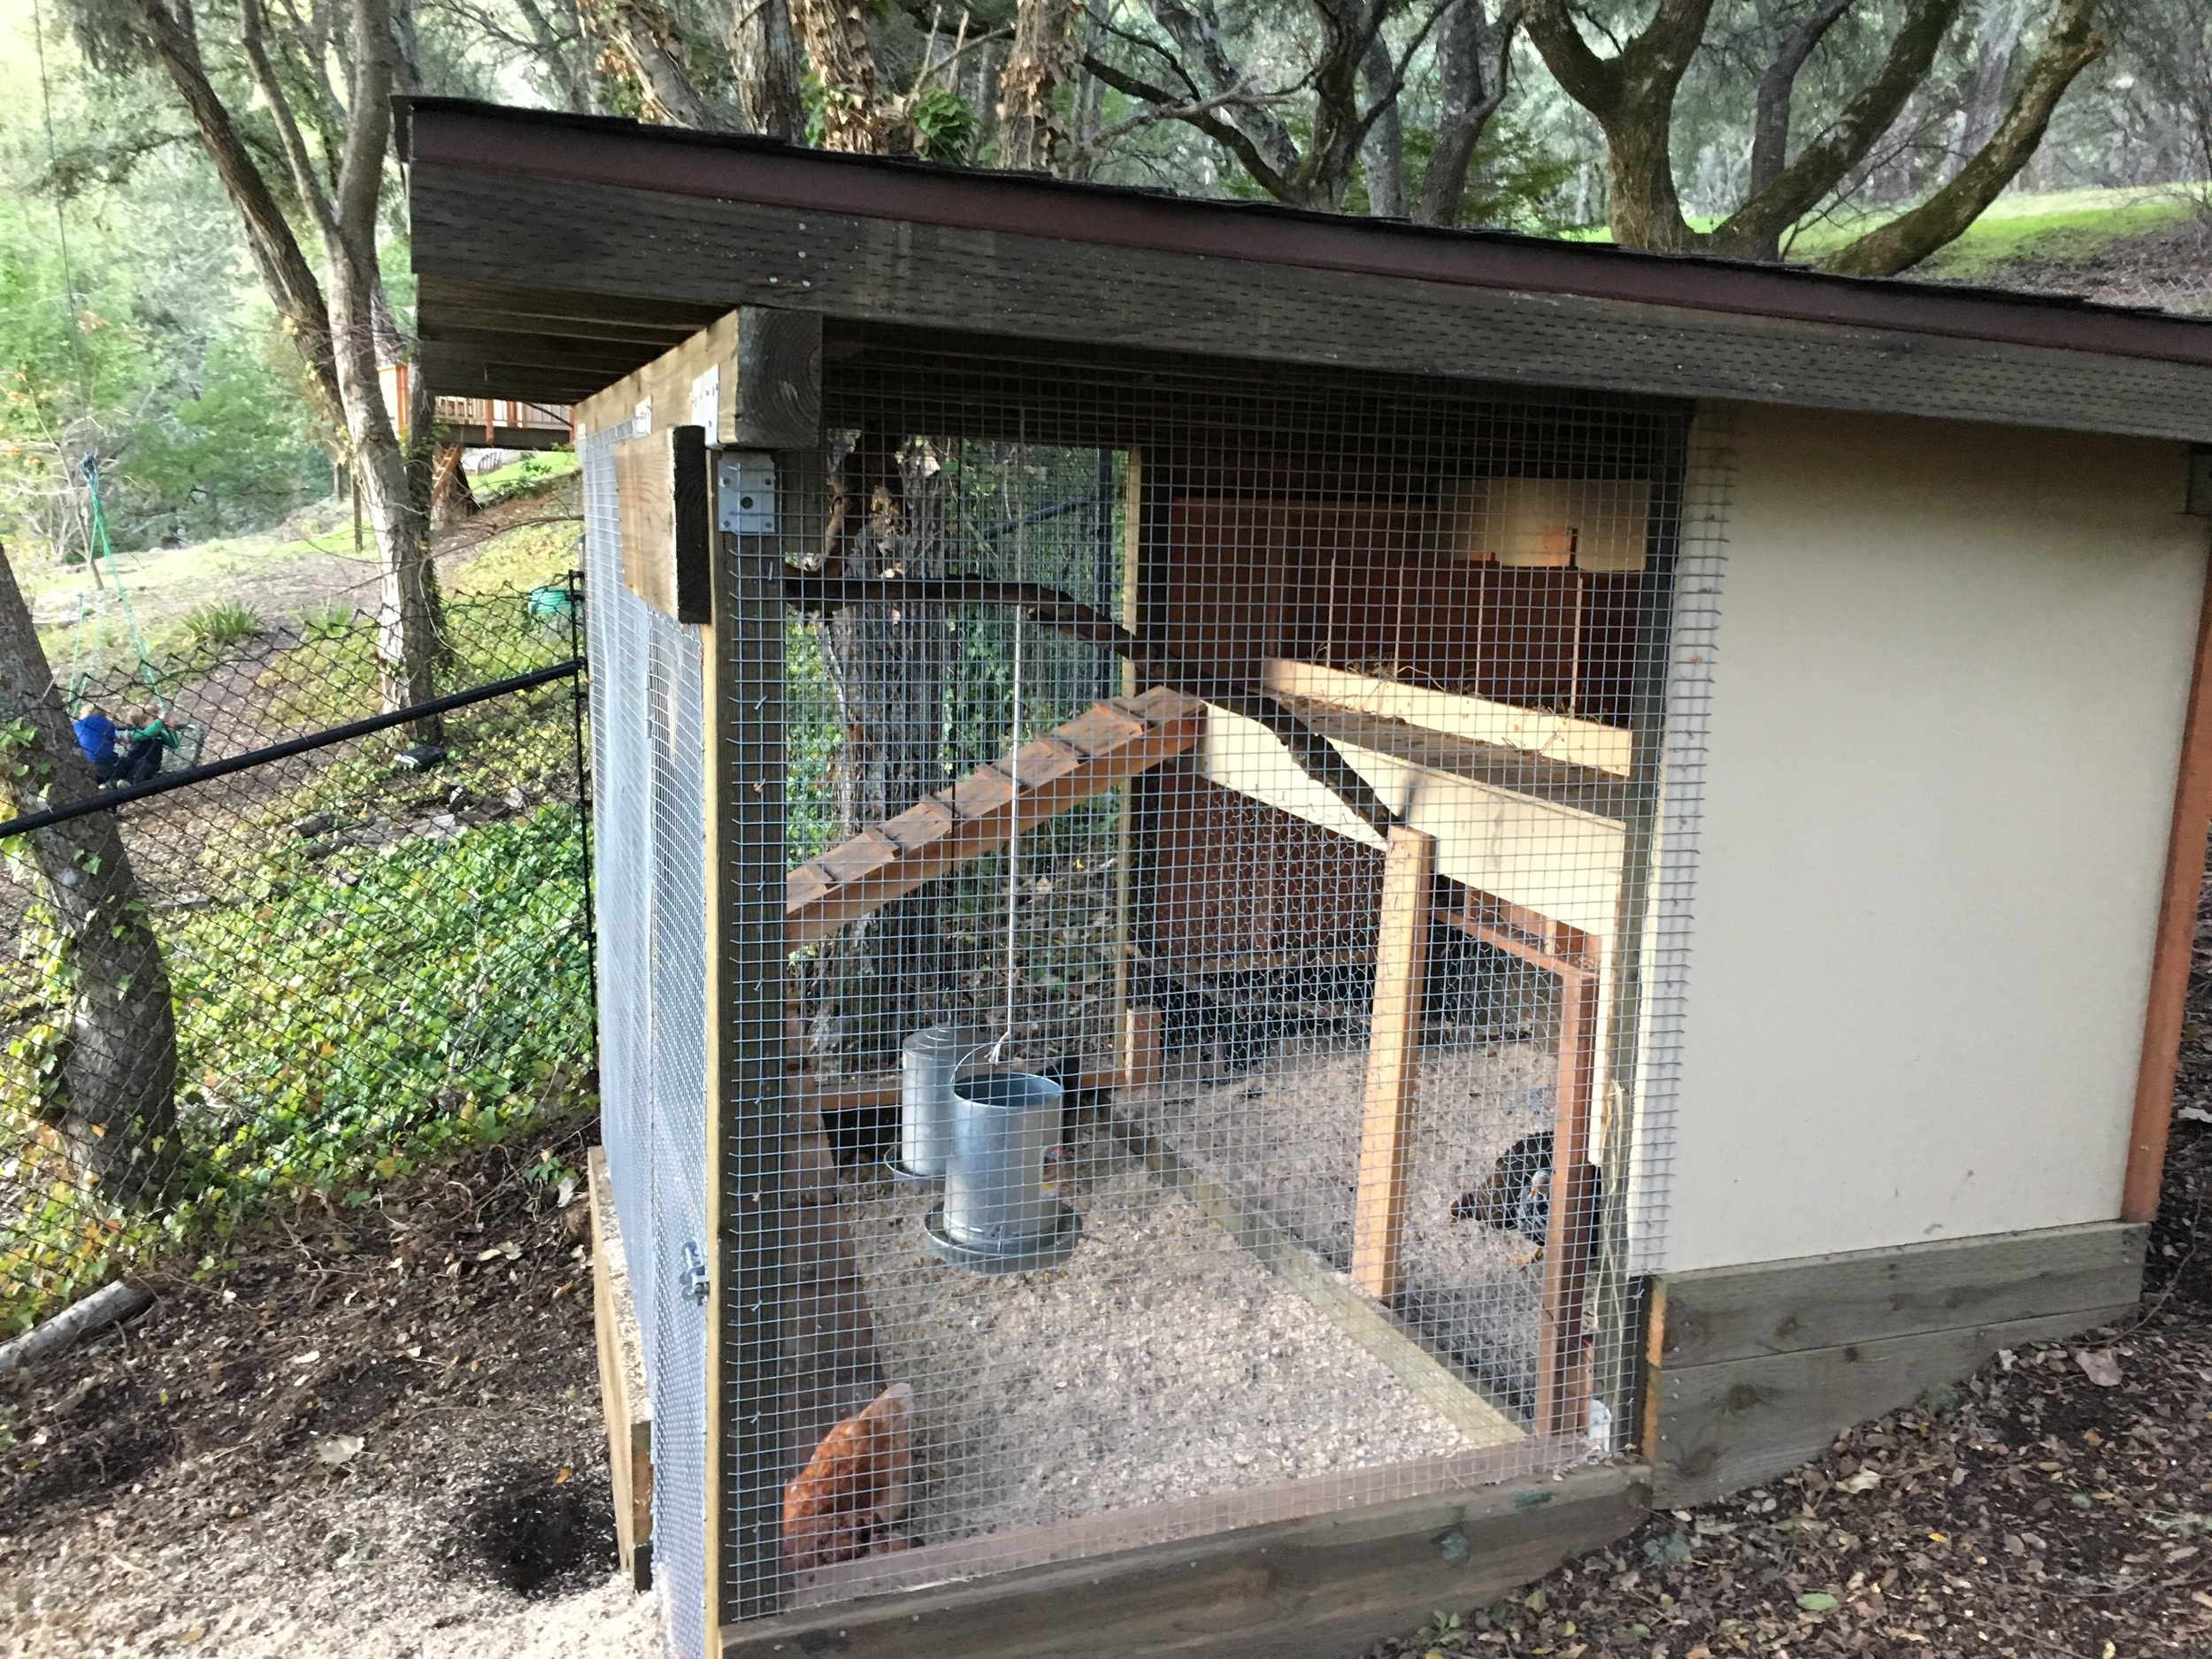 Wire fabric was used at all floor areas, wrapped up the walls and secured to prevent critter intrusions. Gravel and pine shavings cover the wire fabric.